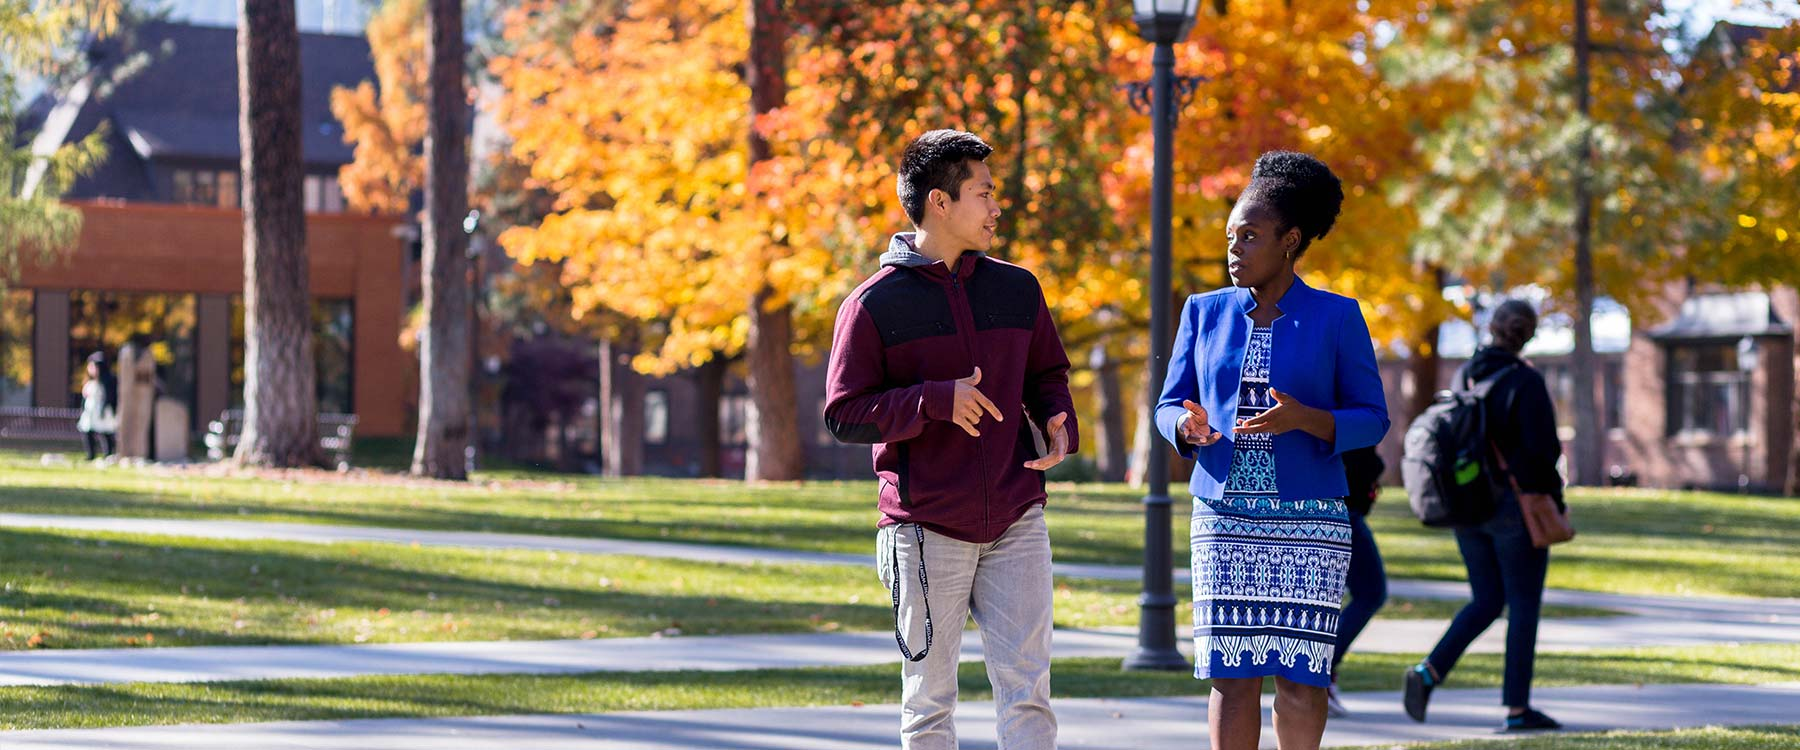 Professor Ndichu talks with a student while walking on campus. They turn toward each other talking.